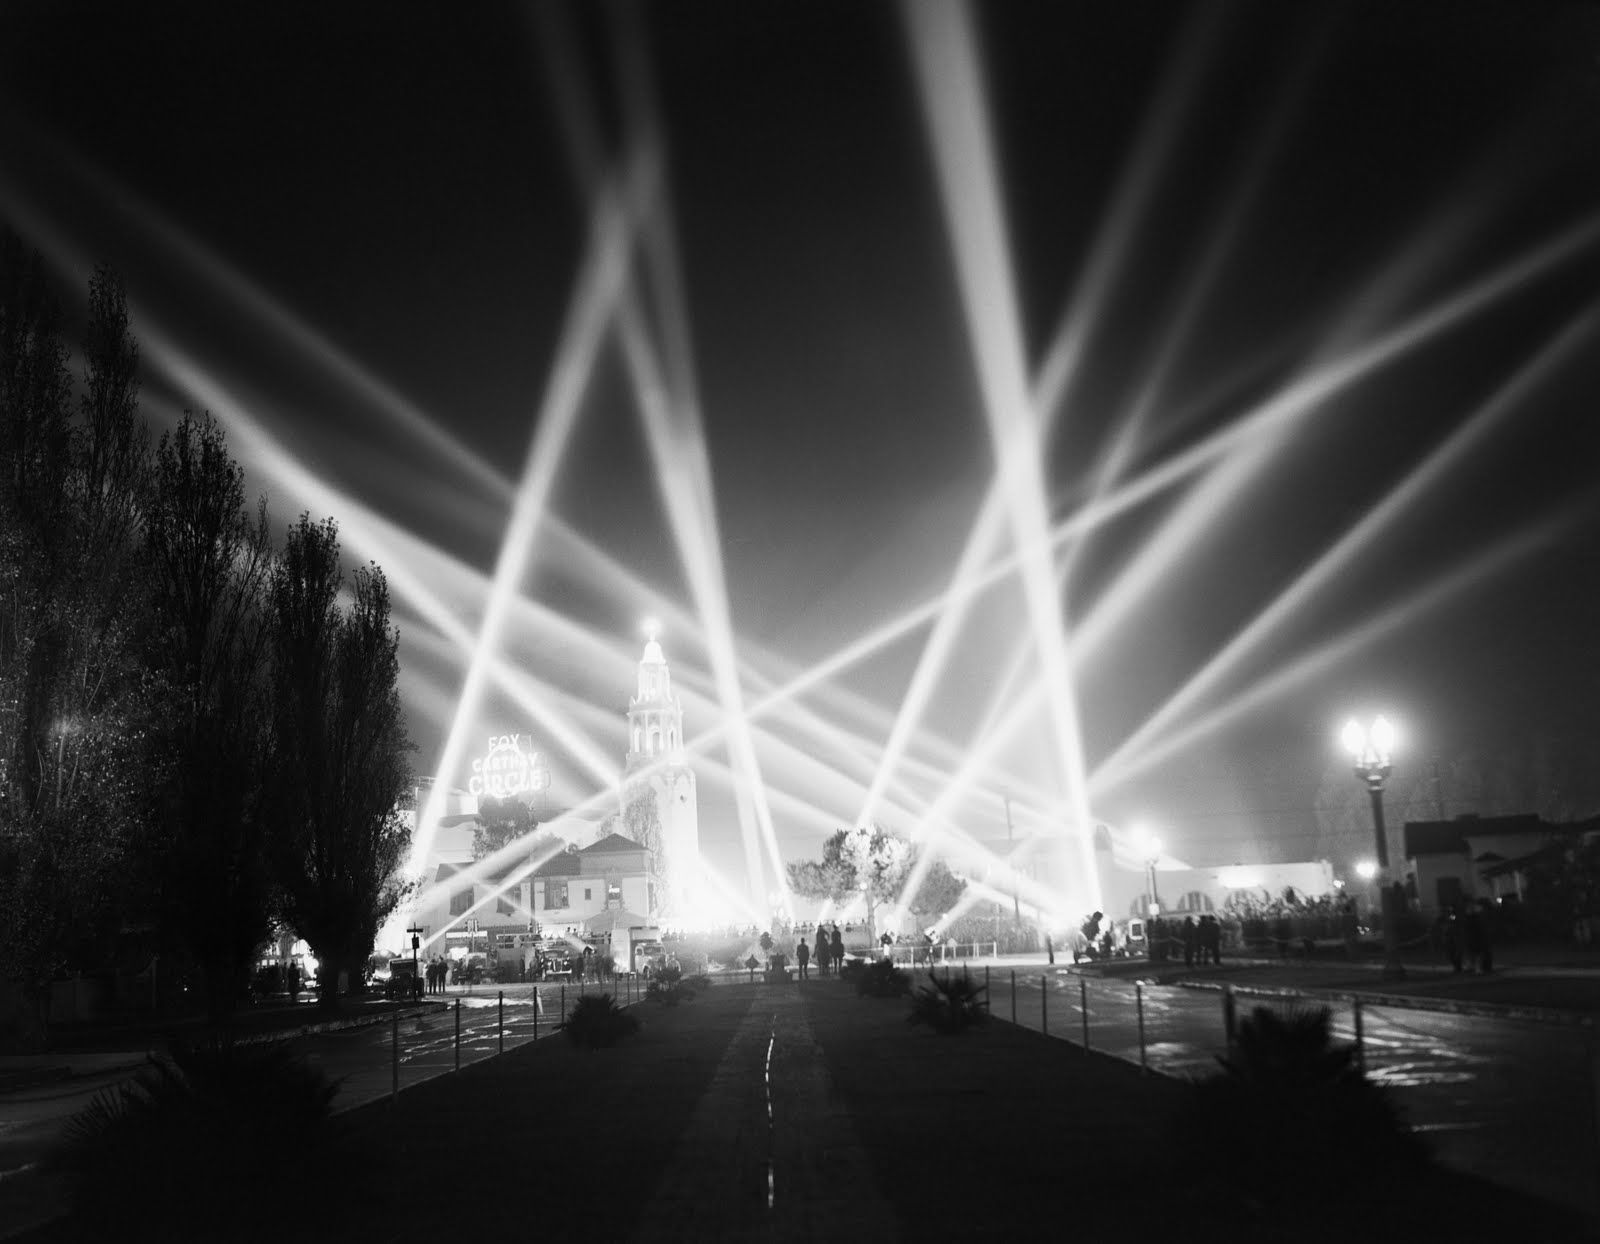 Searchlights Light Up The Sky Over Hollywood At 1940 Film Premiere Of Charles Chaplin S Great Dictator